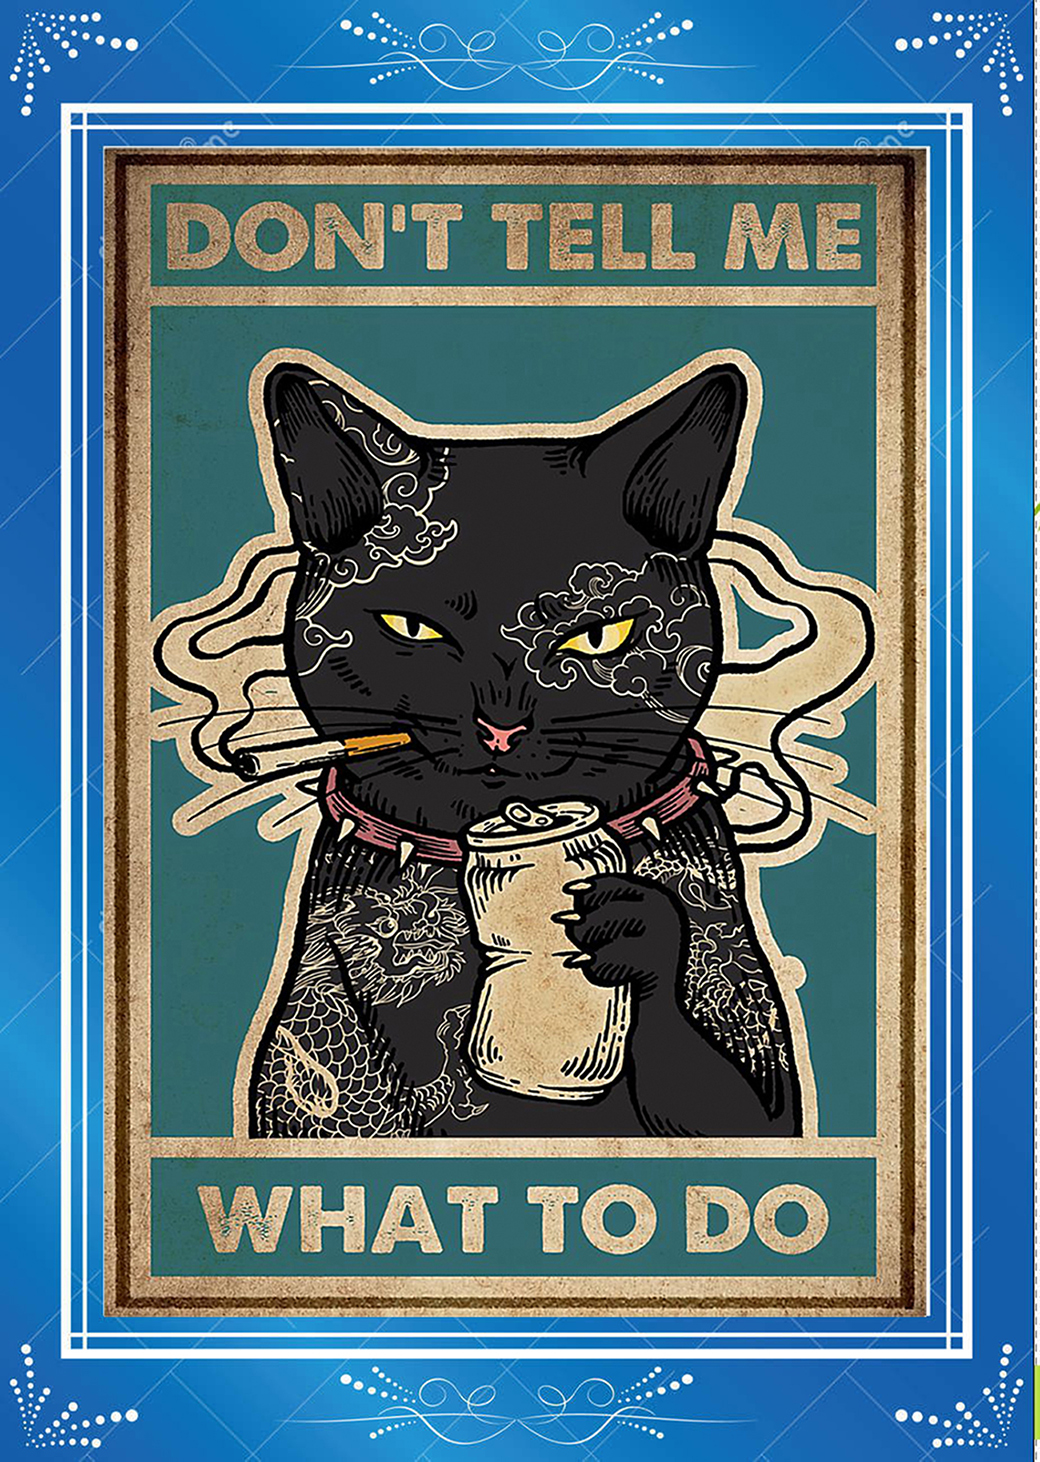 Black Cat Don't tell me what to do Poster-a4